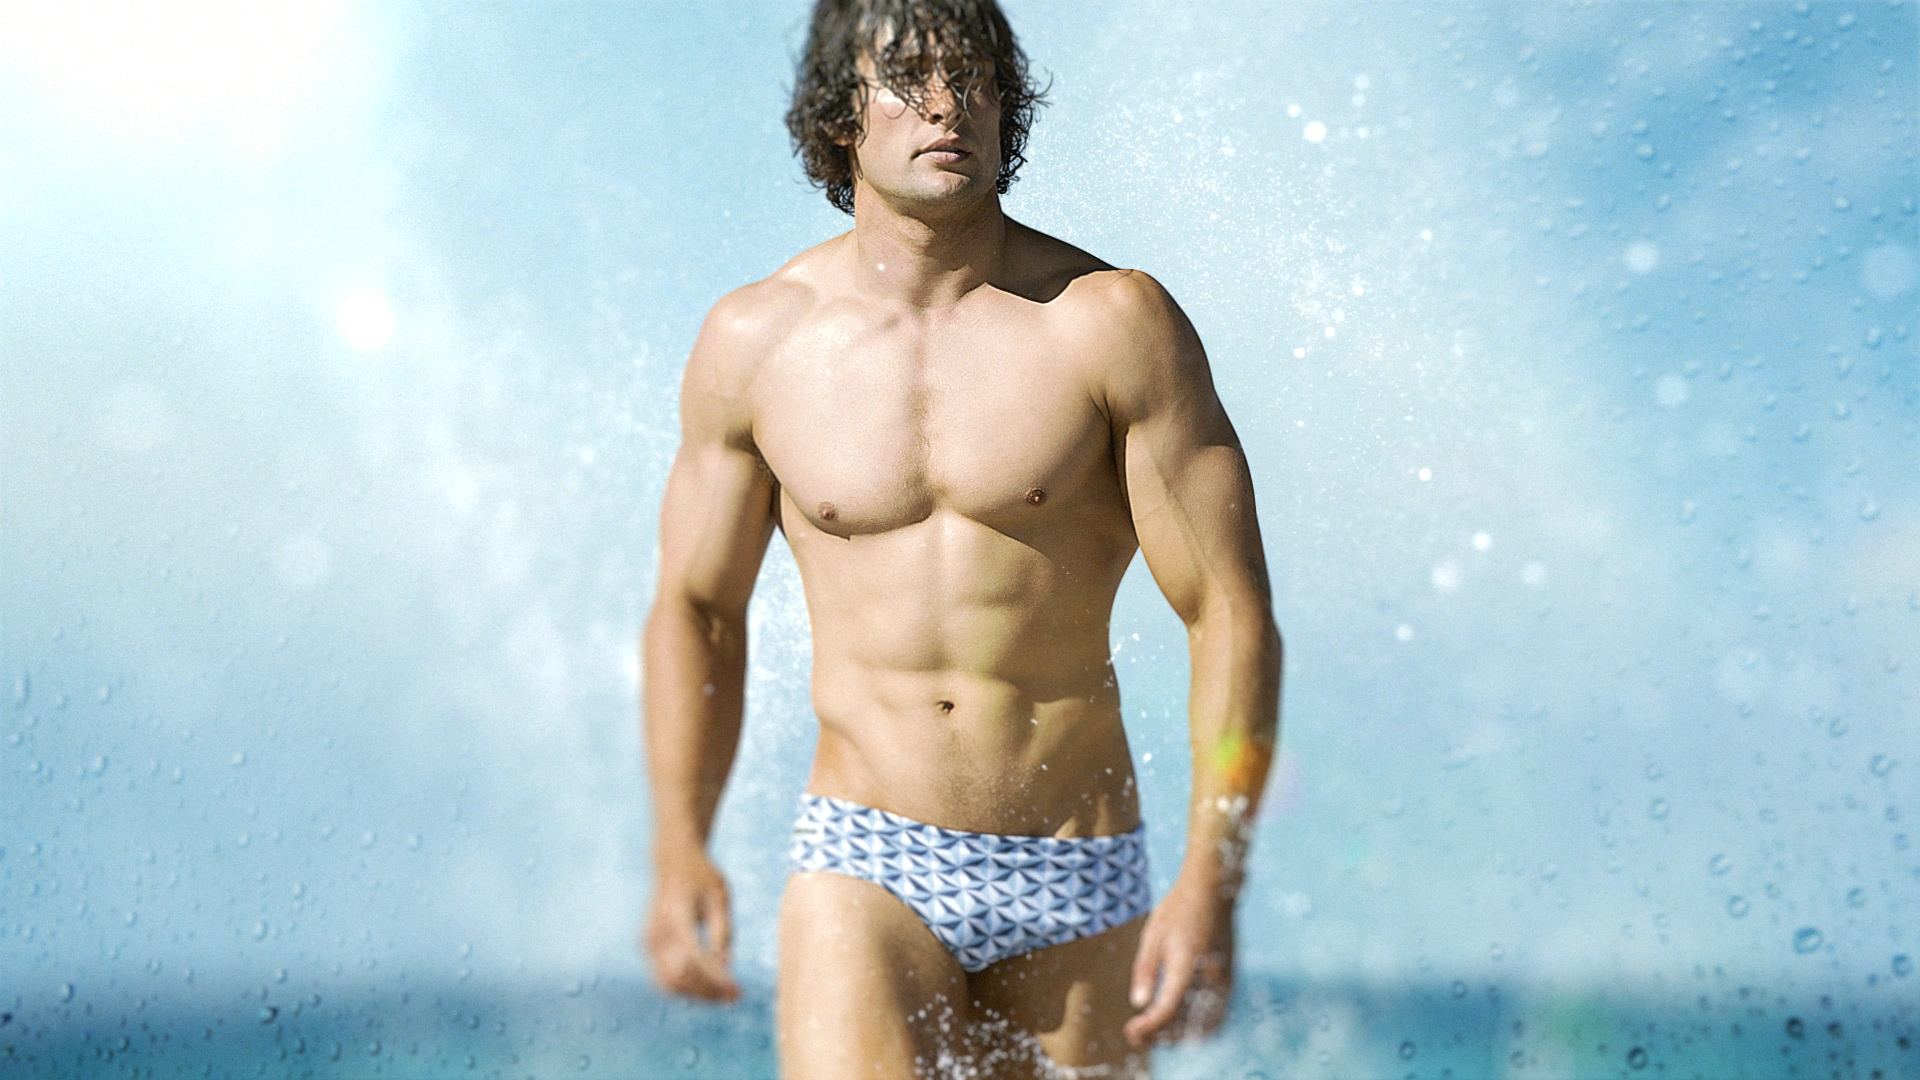 aussieBum - new swimwear 'LUXE' limited edition! Video Image